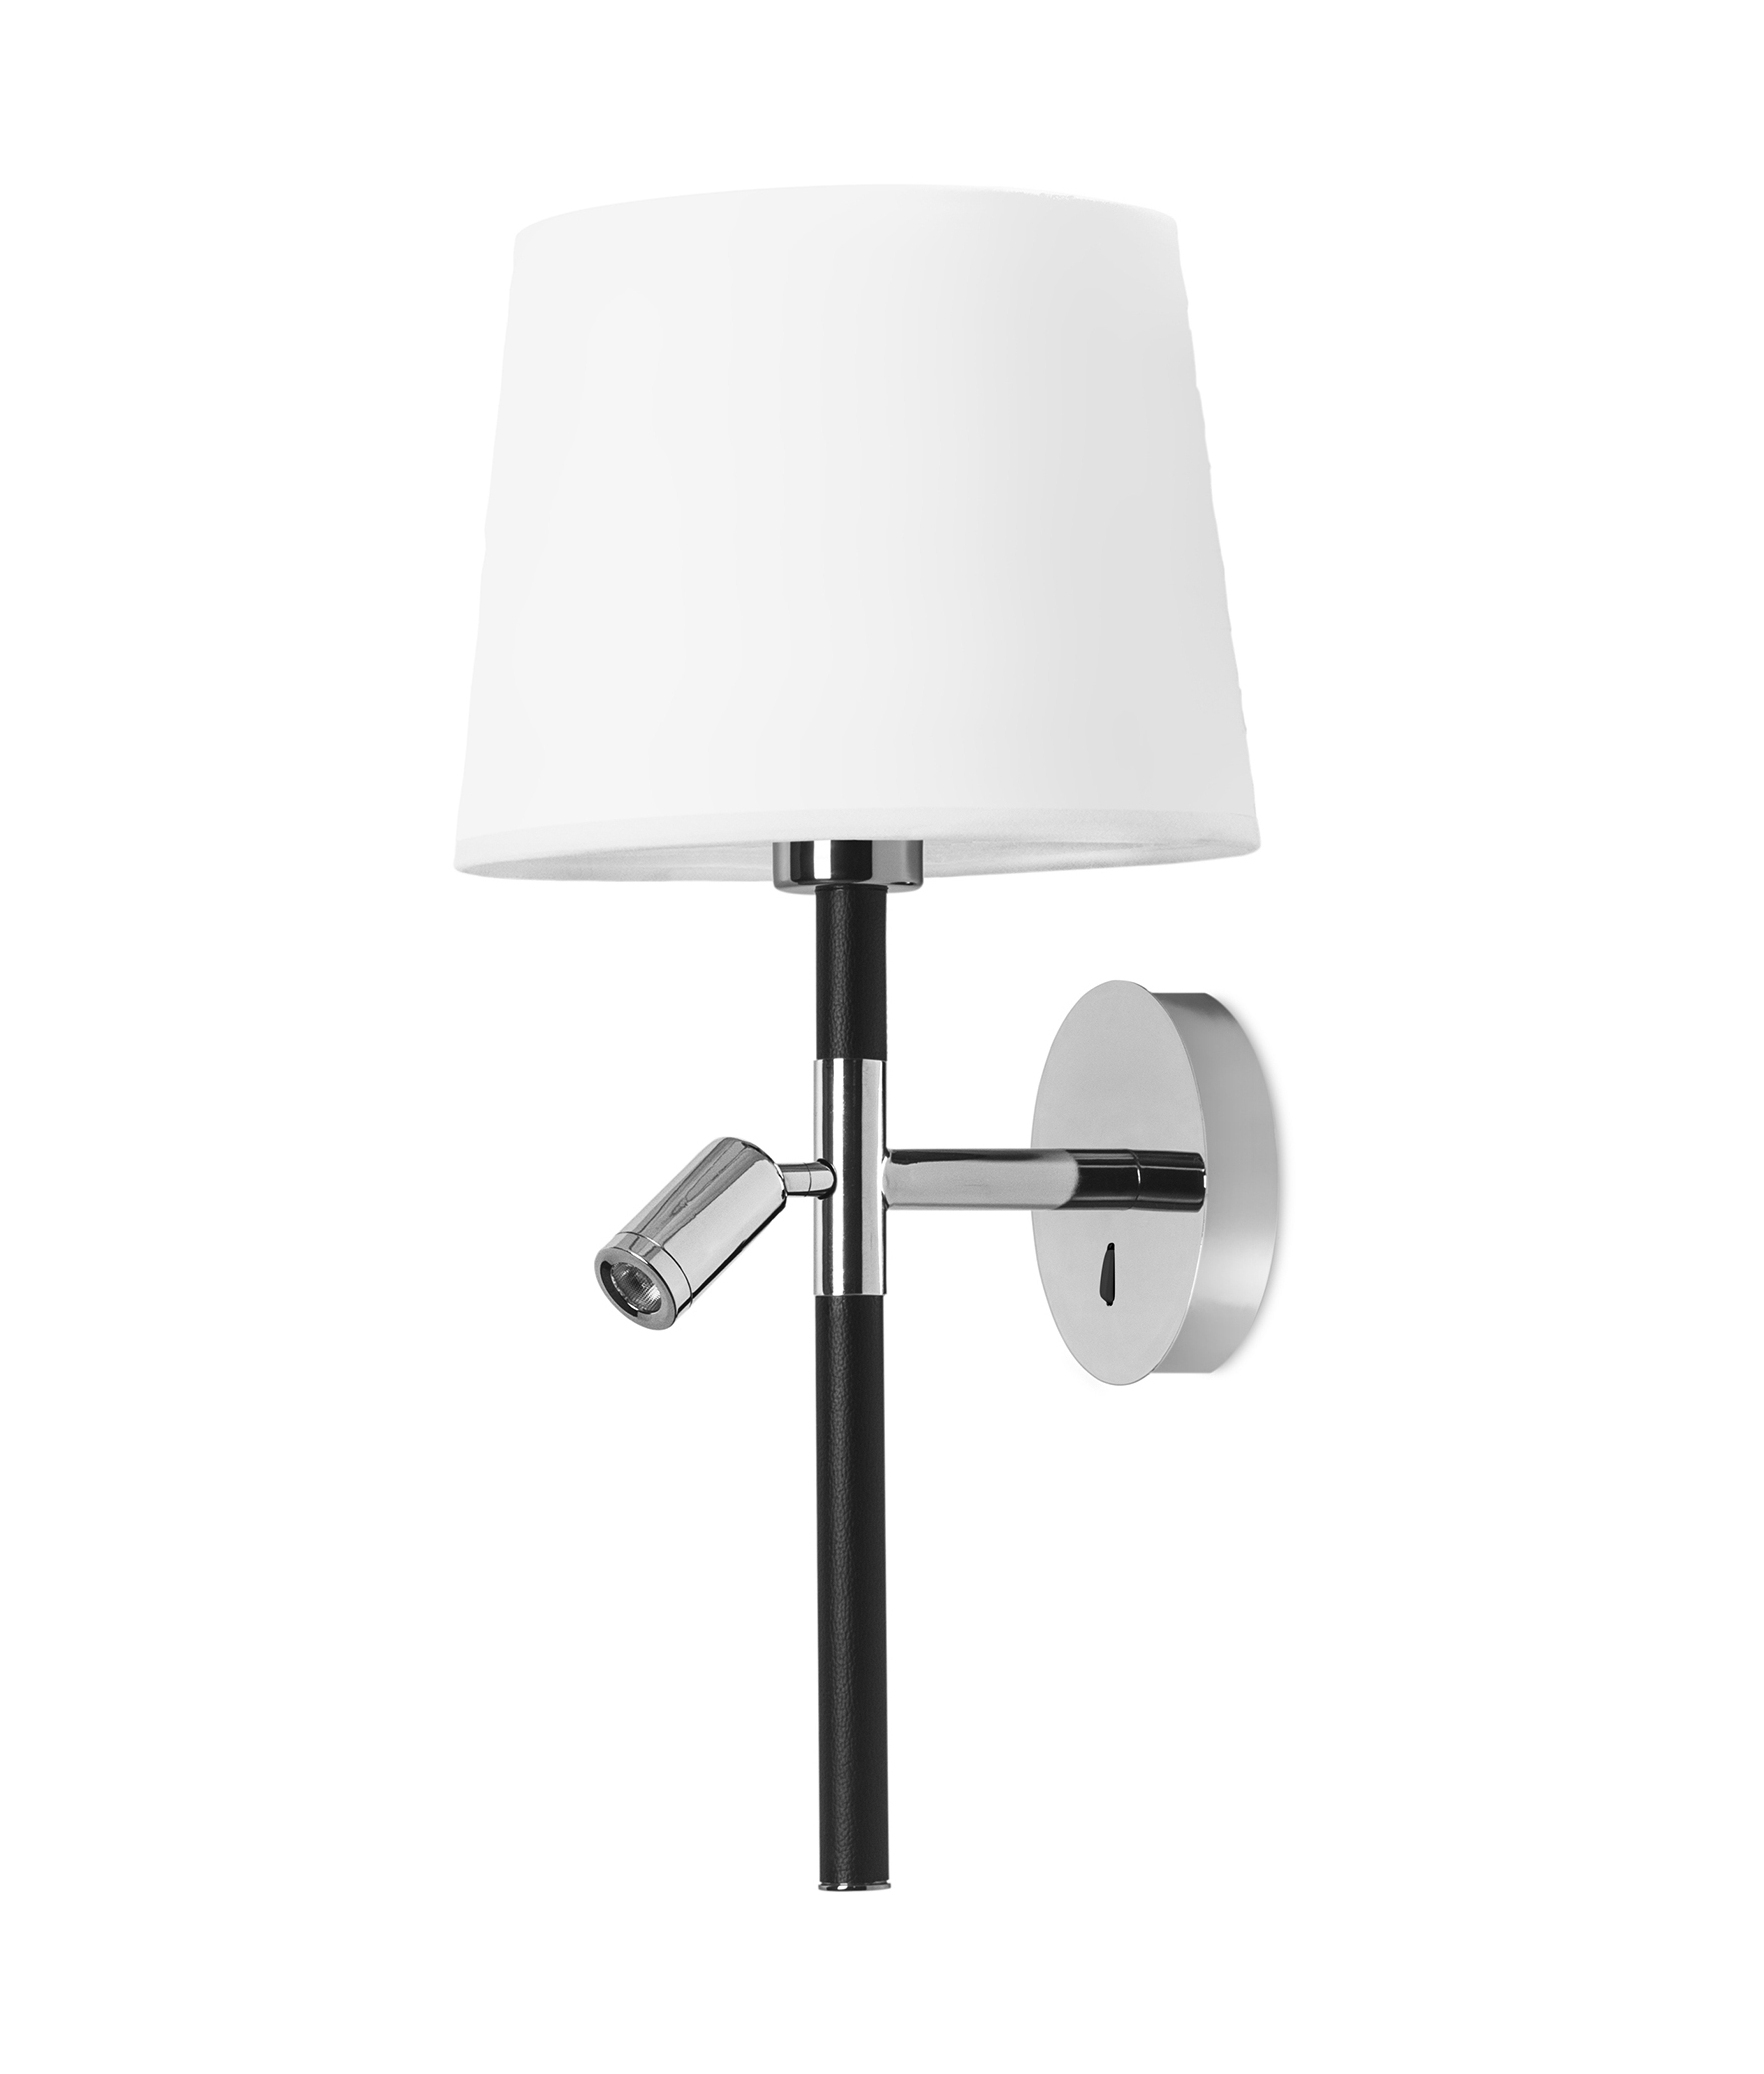 Bedside wall fixtures with built in reading light lighting styles slim chrome bedside luminaire with reading light mozeypictures Gallery